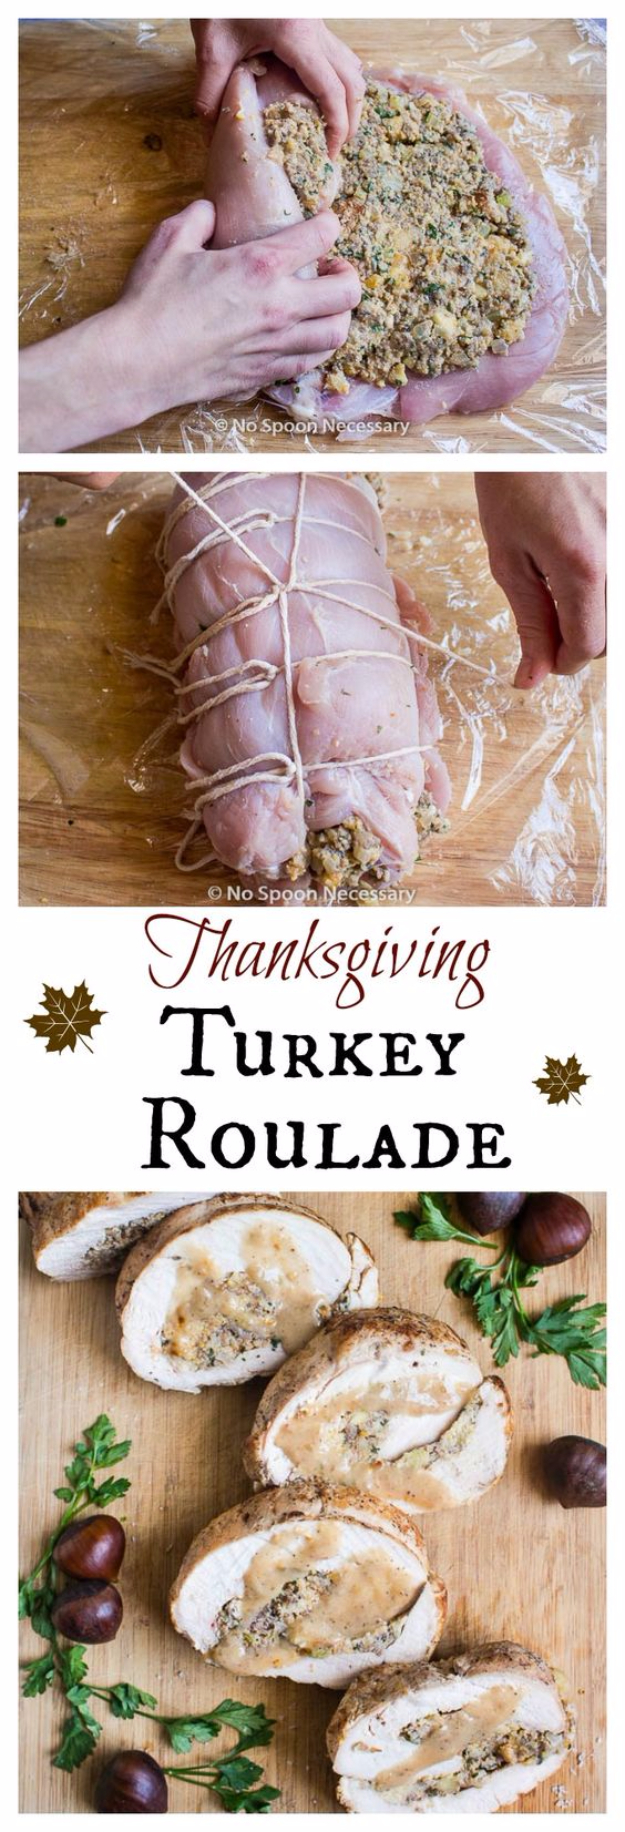 Best Thanksgiving Dinner Recipes - Thanksgiving Turkey Roulade - Easy DIY Desserts, Sides, Sauces, Main Courses, Vegetables, Pie and Side Dishes. Simple Gravy, Cranberries, Turkey and Pies With Step by Step Tutorials